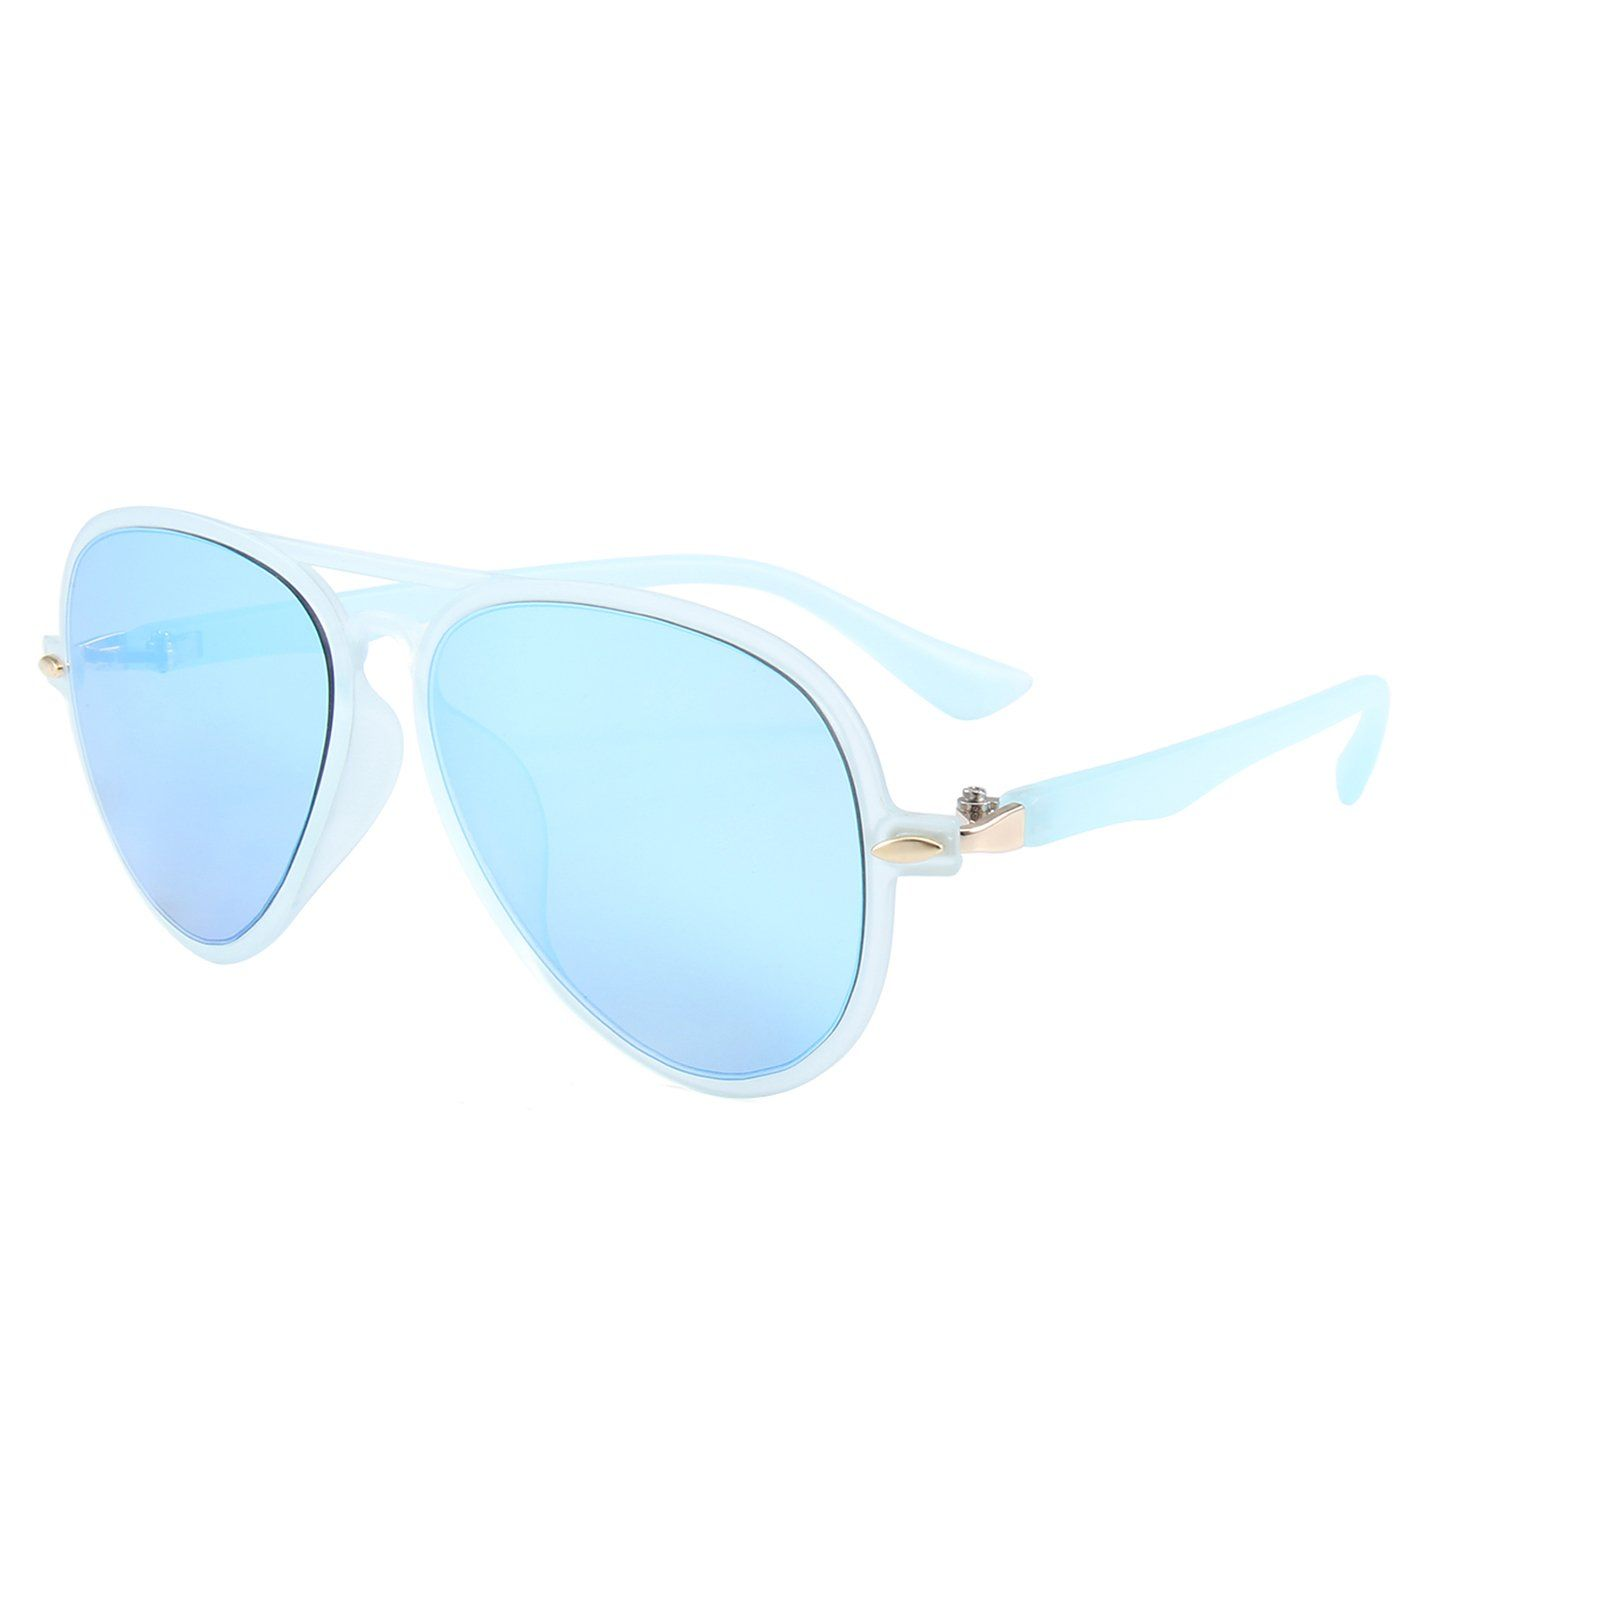 Retro Aviator Sunglasses (Blue)